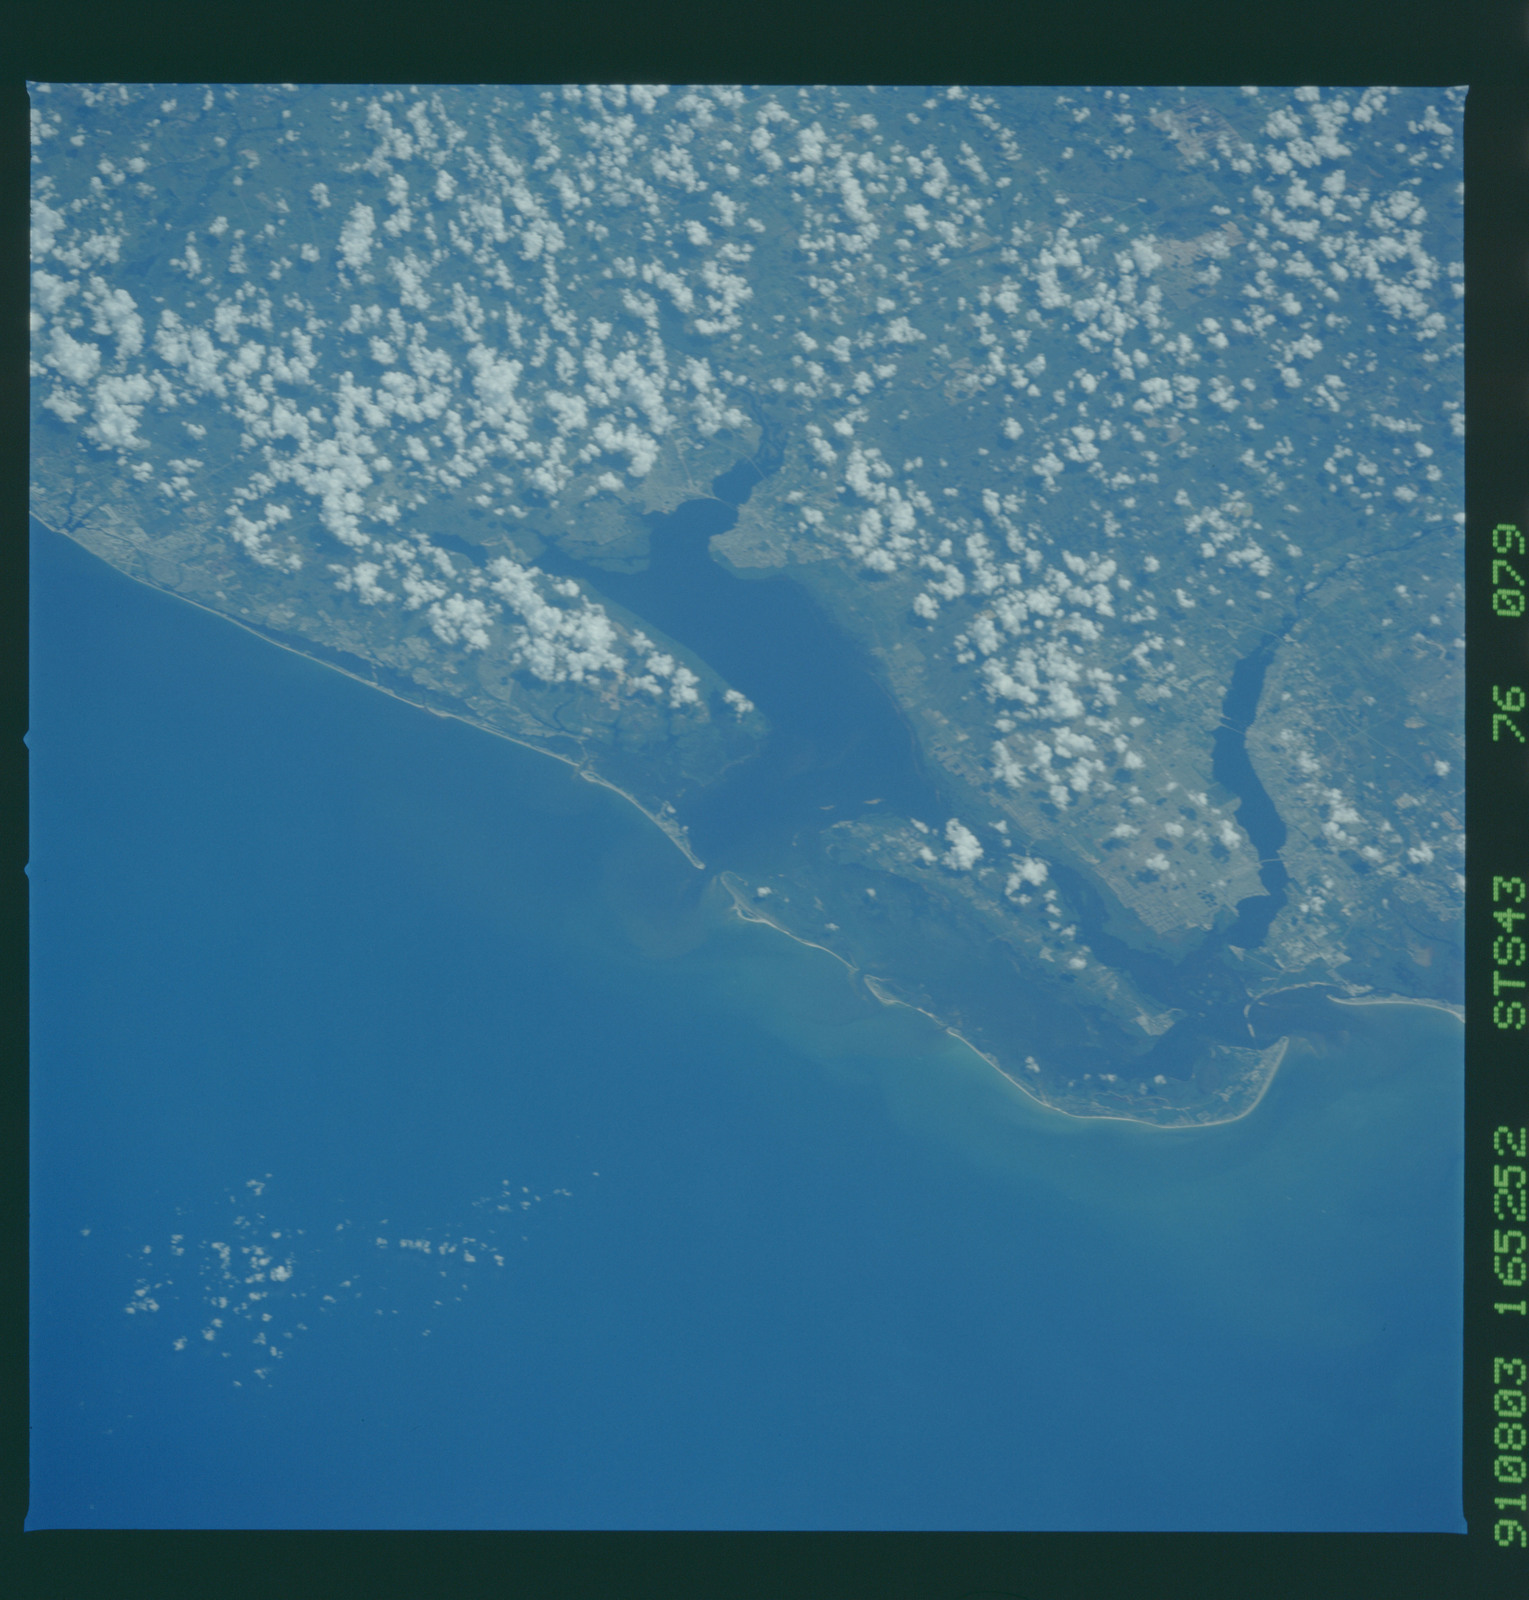 S43-76-079 - STS-043 - STS-43 earth observations